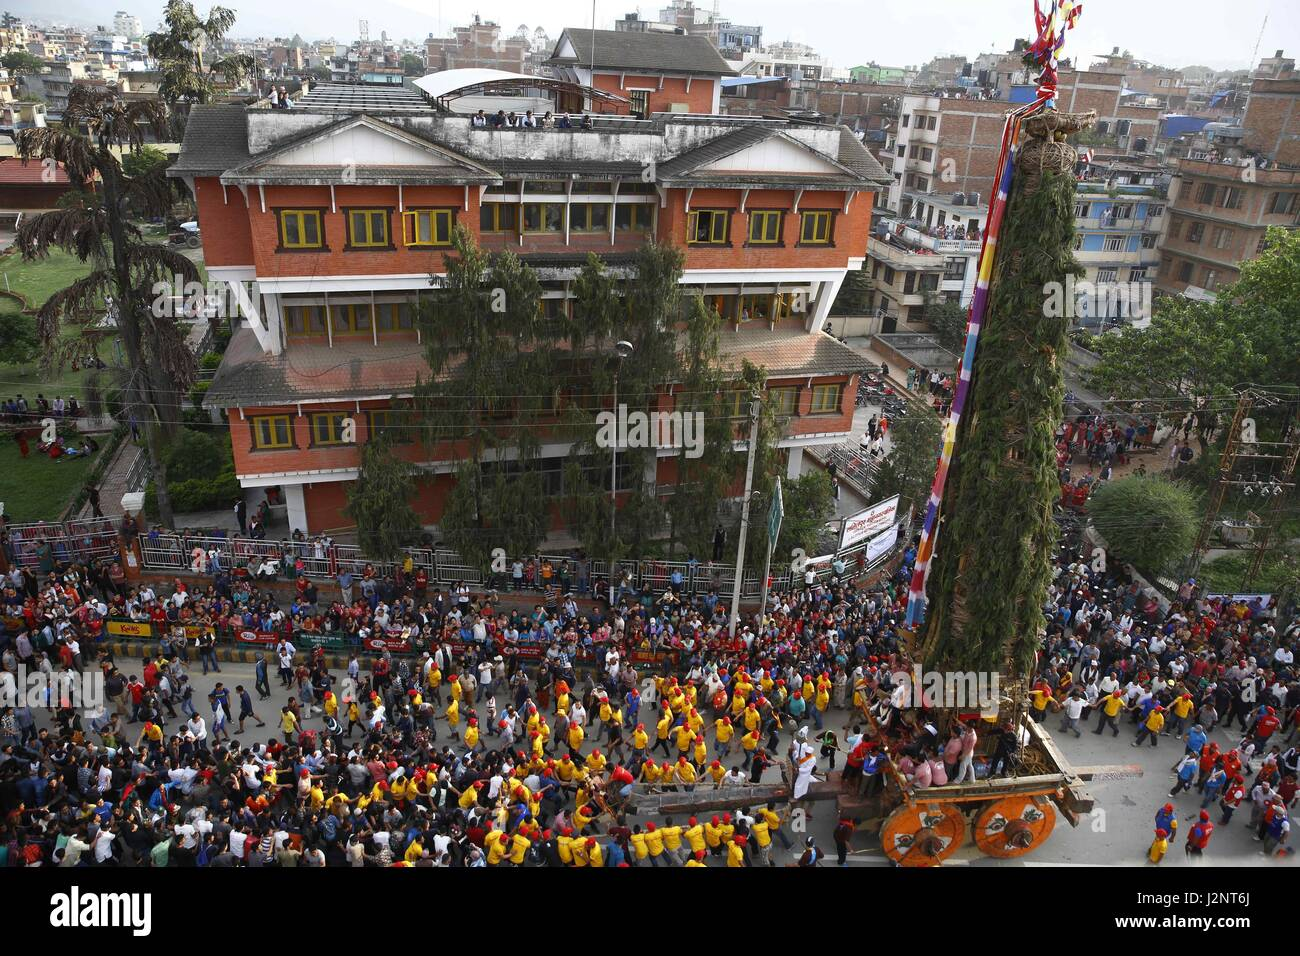 April 30, 2017 - Lalitpur, Nepal - Nepalese revelers pull the ...